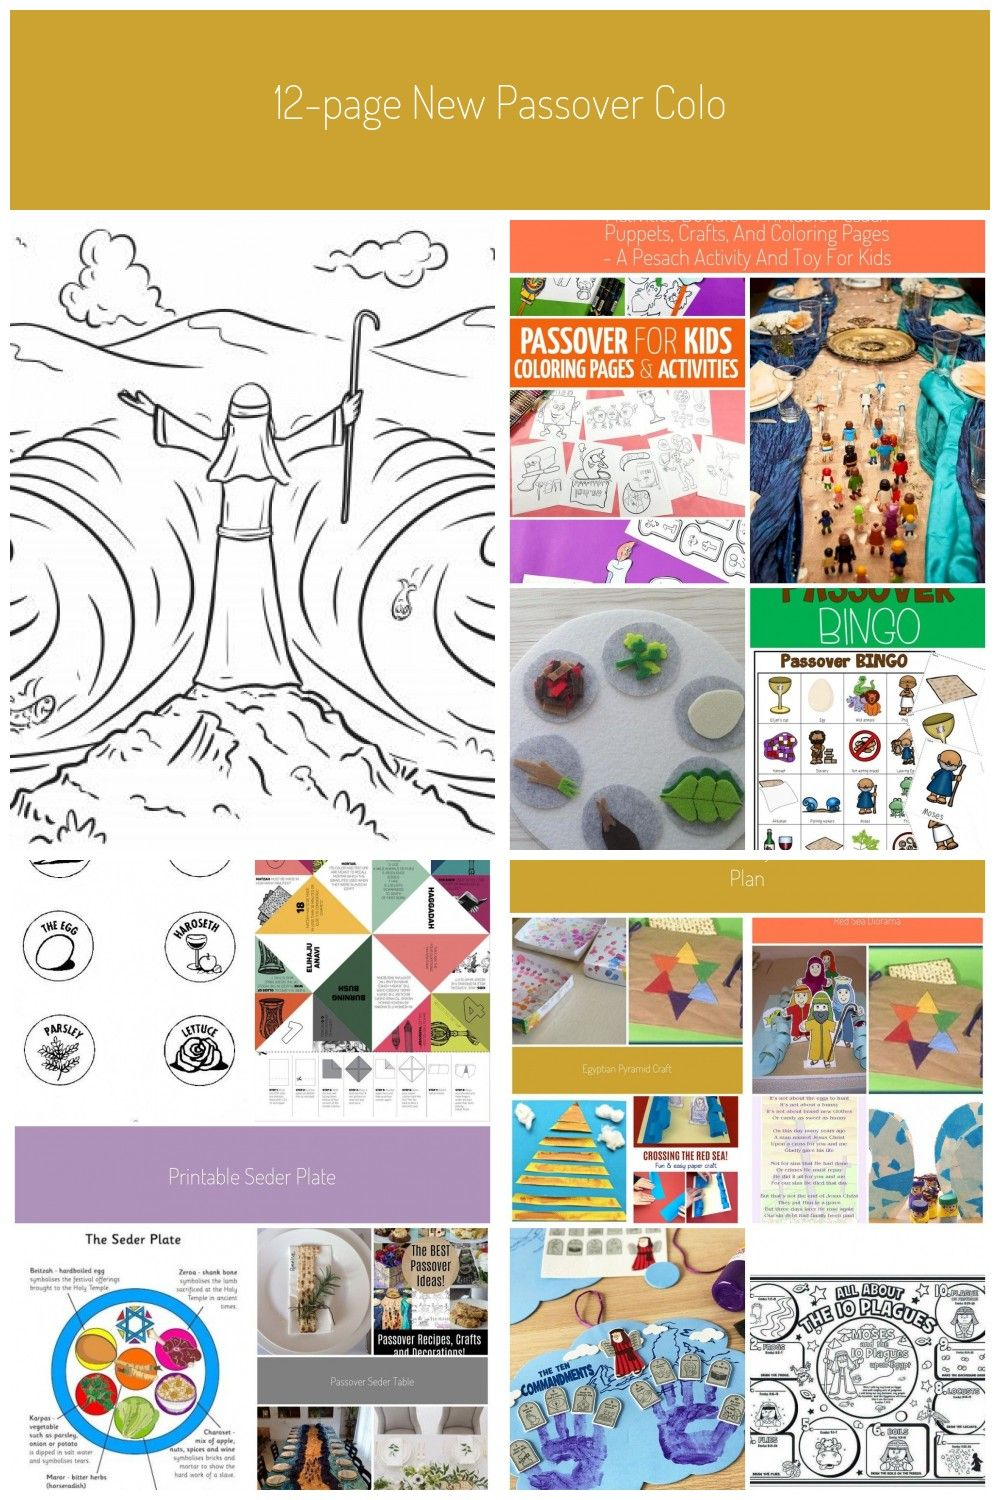 12 Page New Passover Coloring Book Printables Jewish Kidssome Fun Passover Pesach Coloring Pages And Activities To Keep The Kids Busy While You Prepare For The